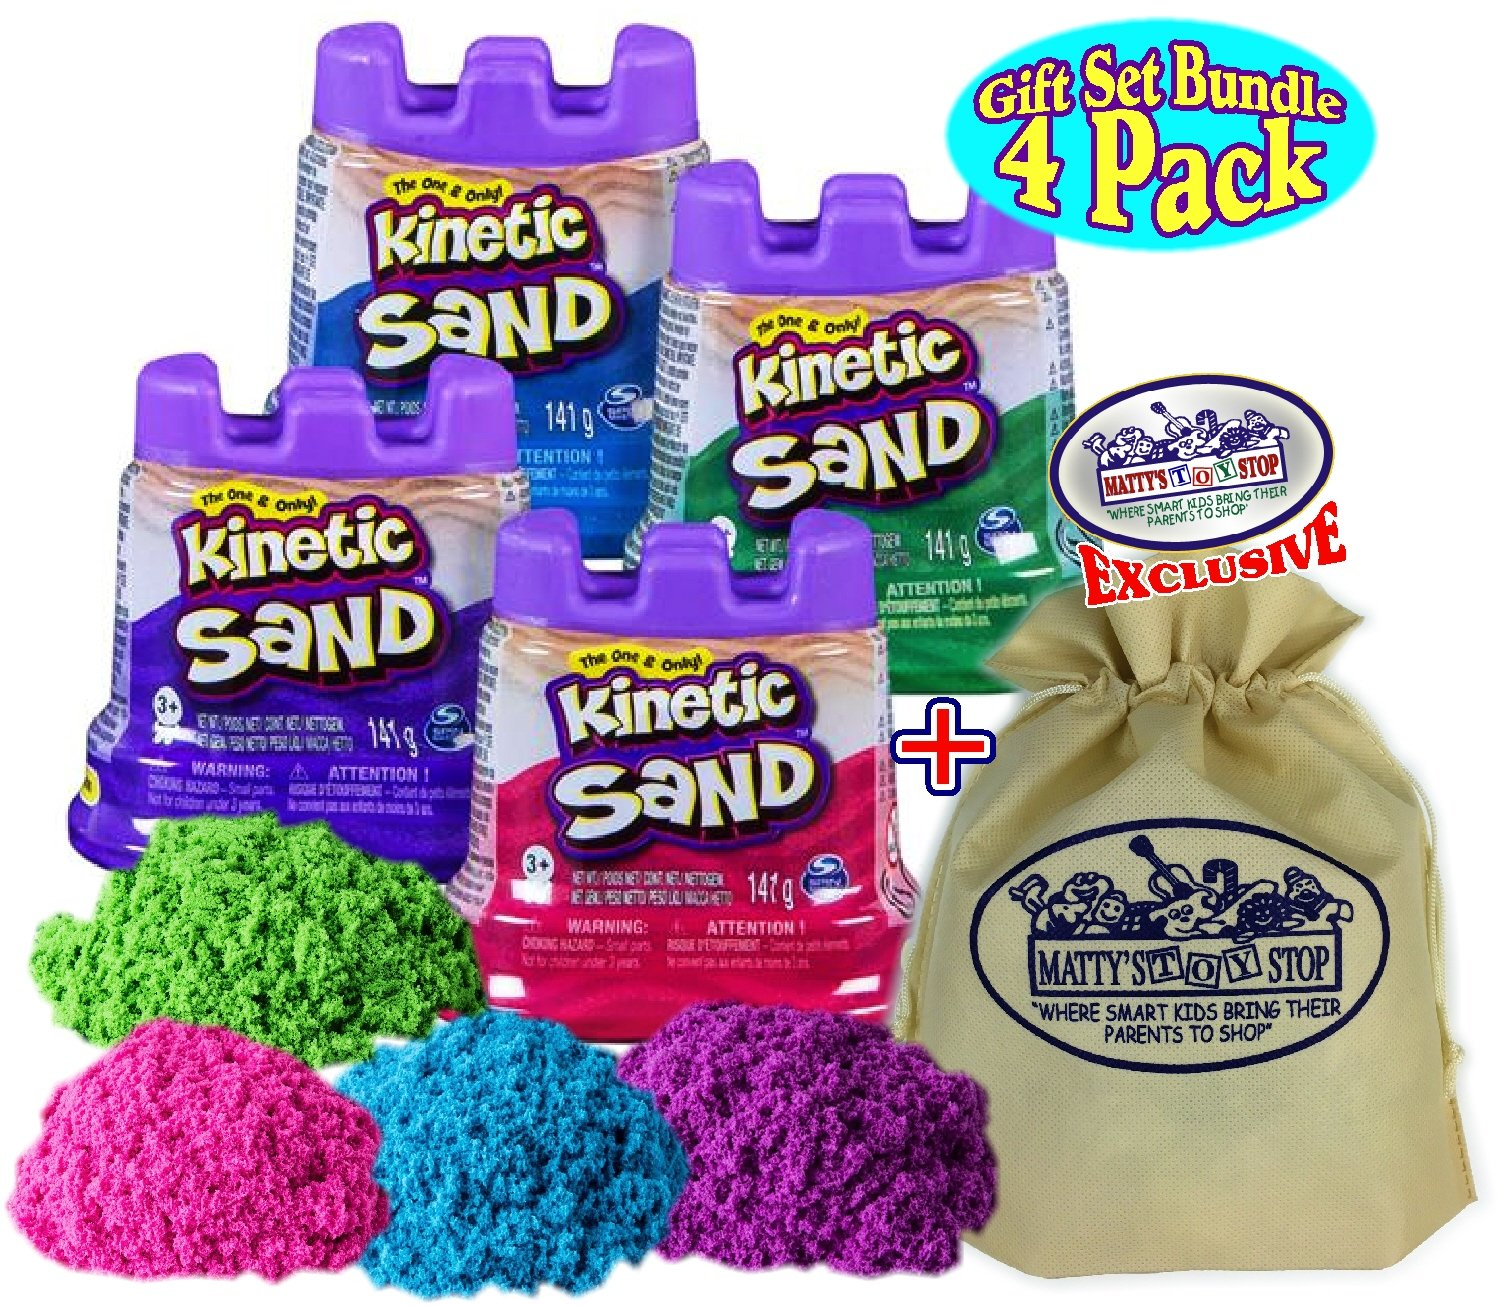 4 Pack Toysmith Containers Pink 4 Pack Purple /& Blue Gift Set Bundle with Bonus Matty/'s Toy Stop Storage Bag Kinetic Sand Modeling Sand 5oz Purple /& Blue Gift Set Bundle with Bonus Mattys Toy Stop Storage Bag Green